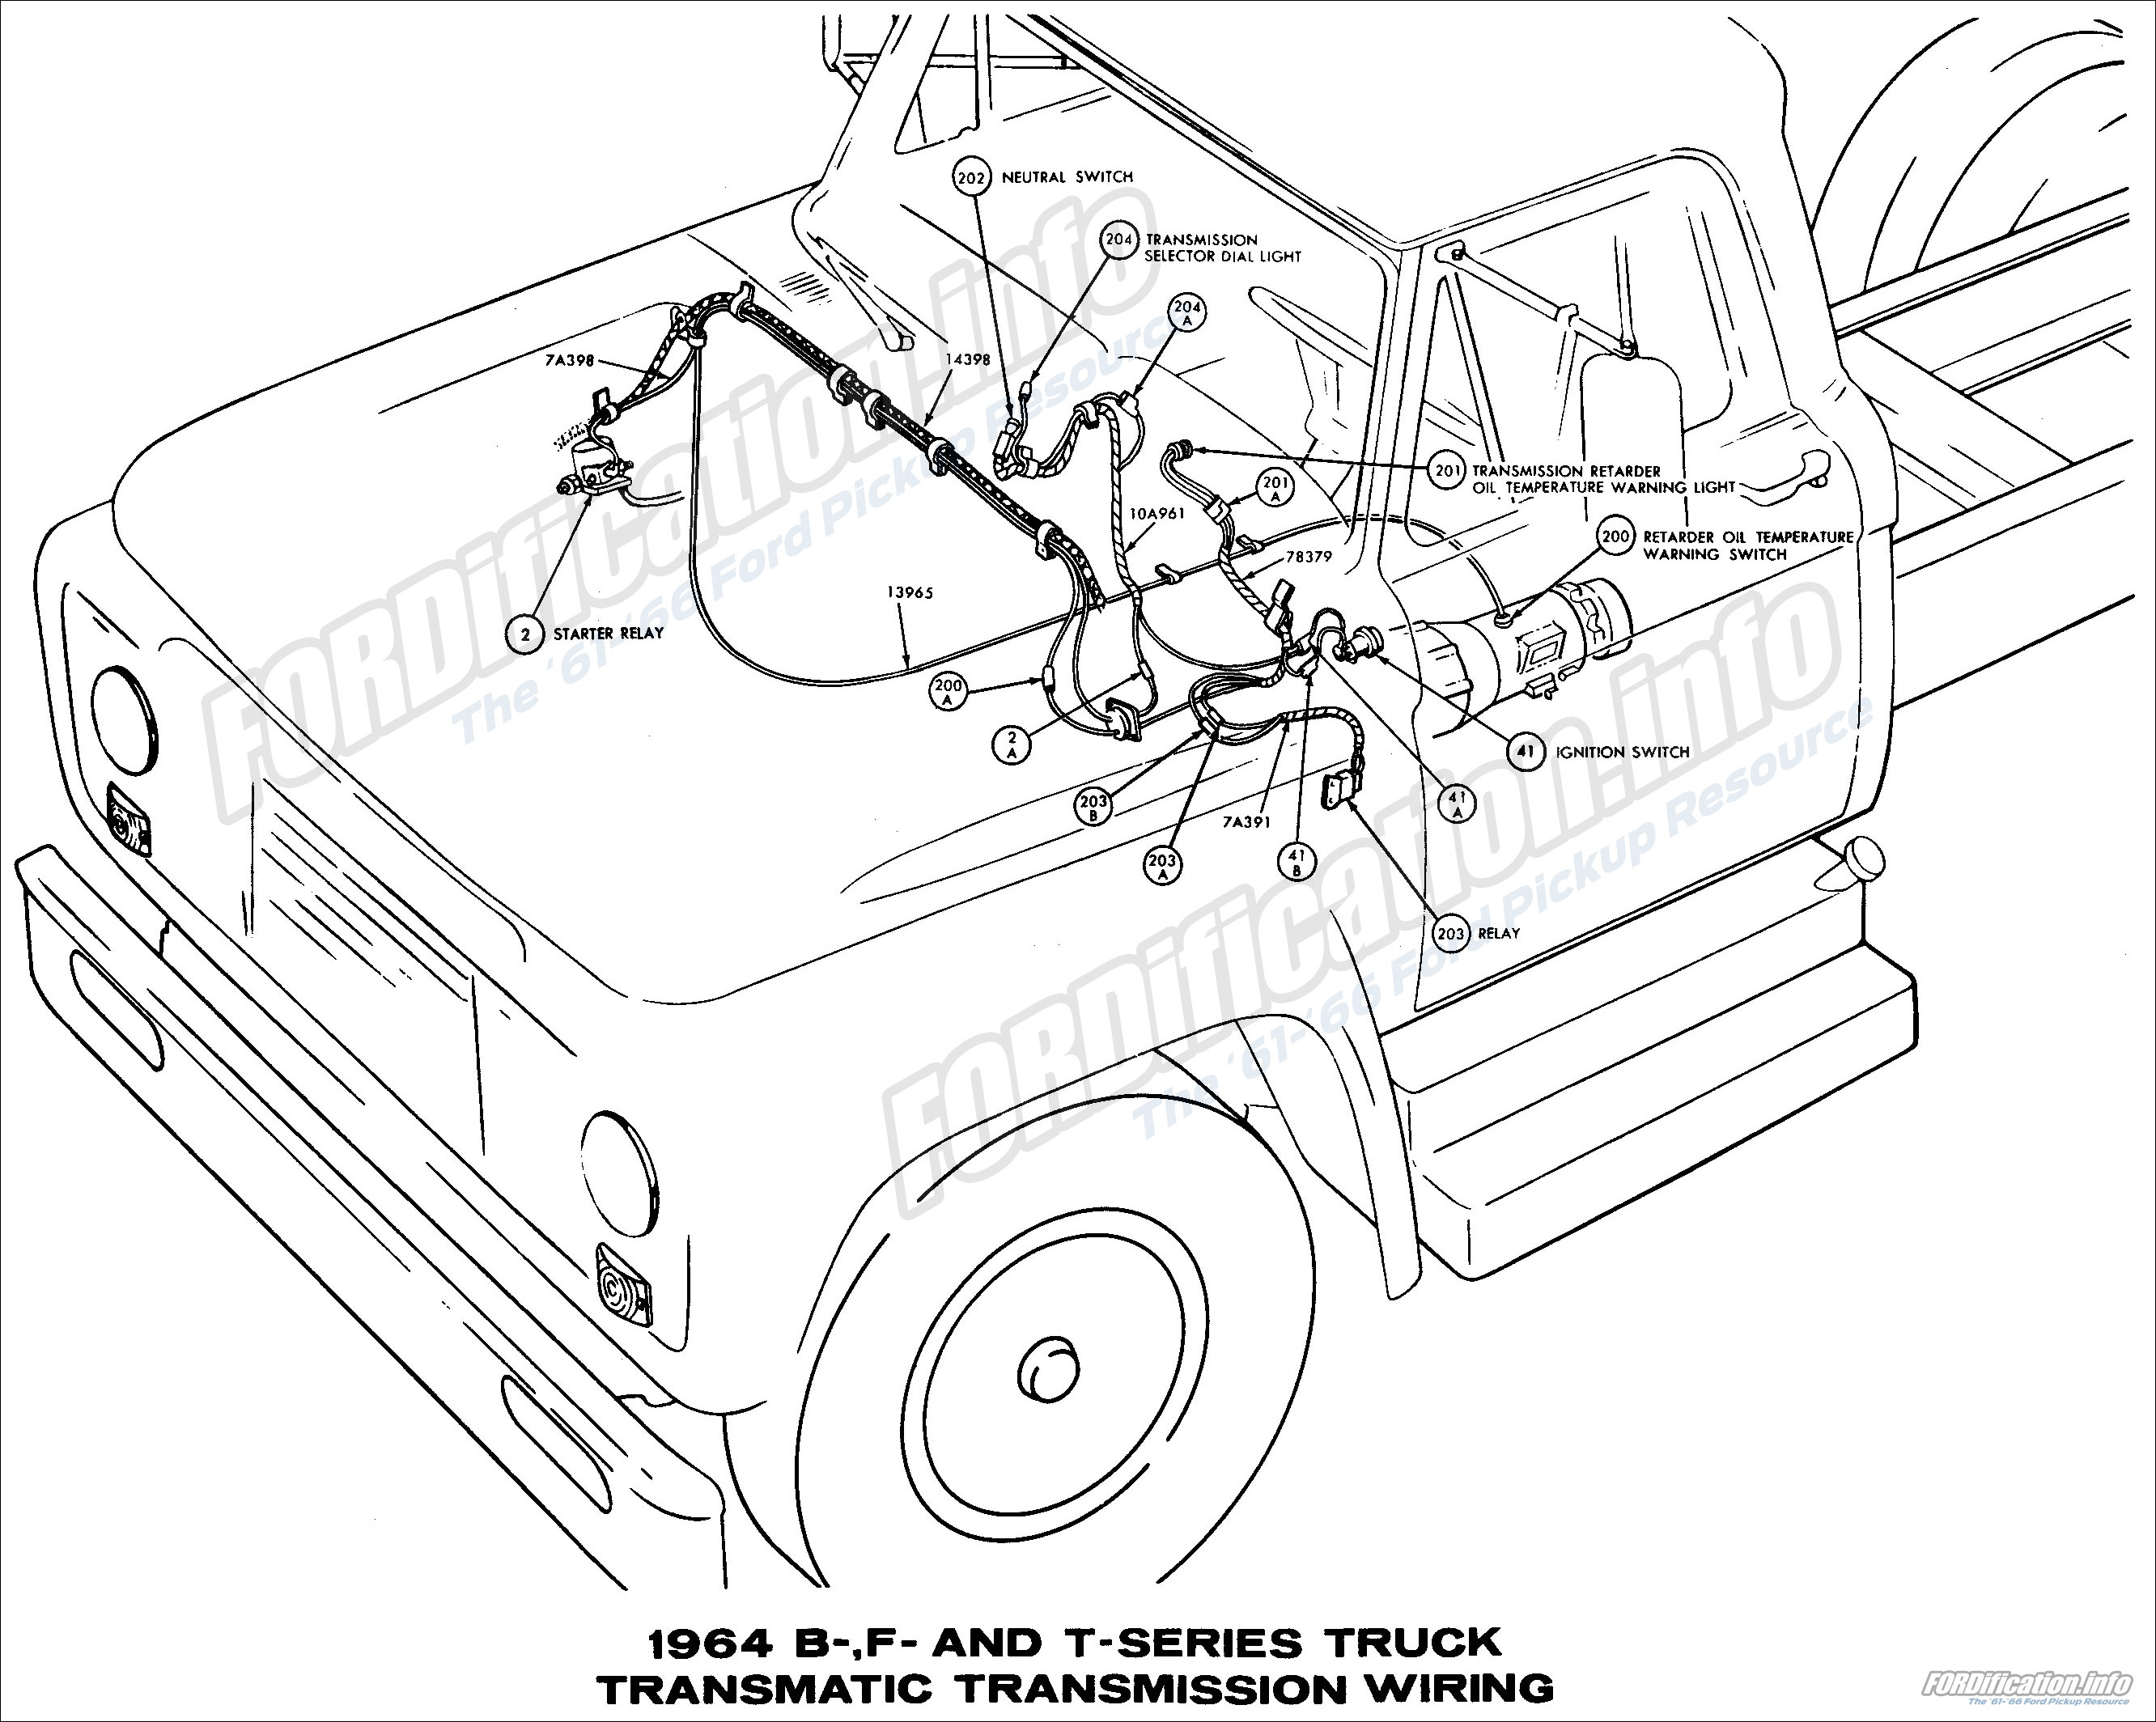 1954 ford 8n wiring diagram schematic wiring library 1954 Ford Customline Wiring-Diagram 1964 ford truck wiring diagrams fordification info the 61 66